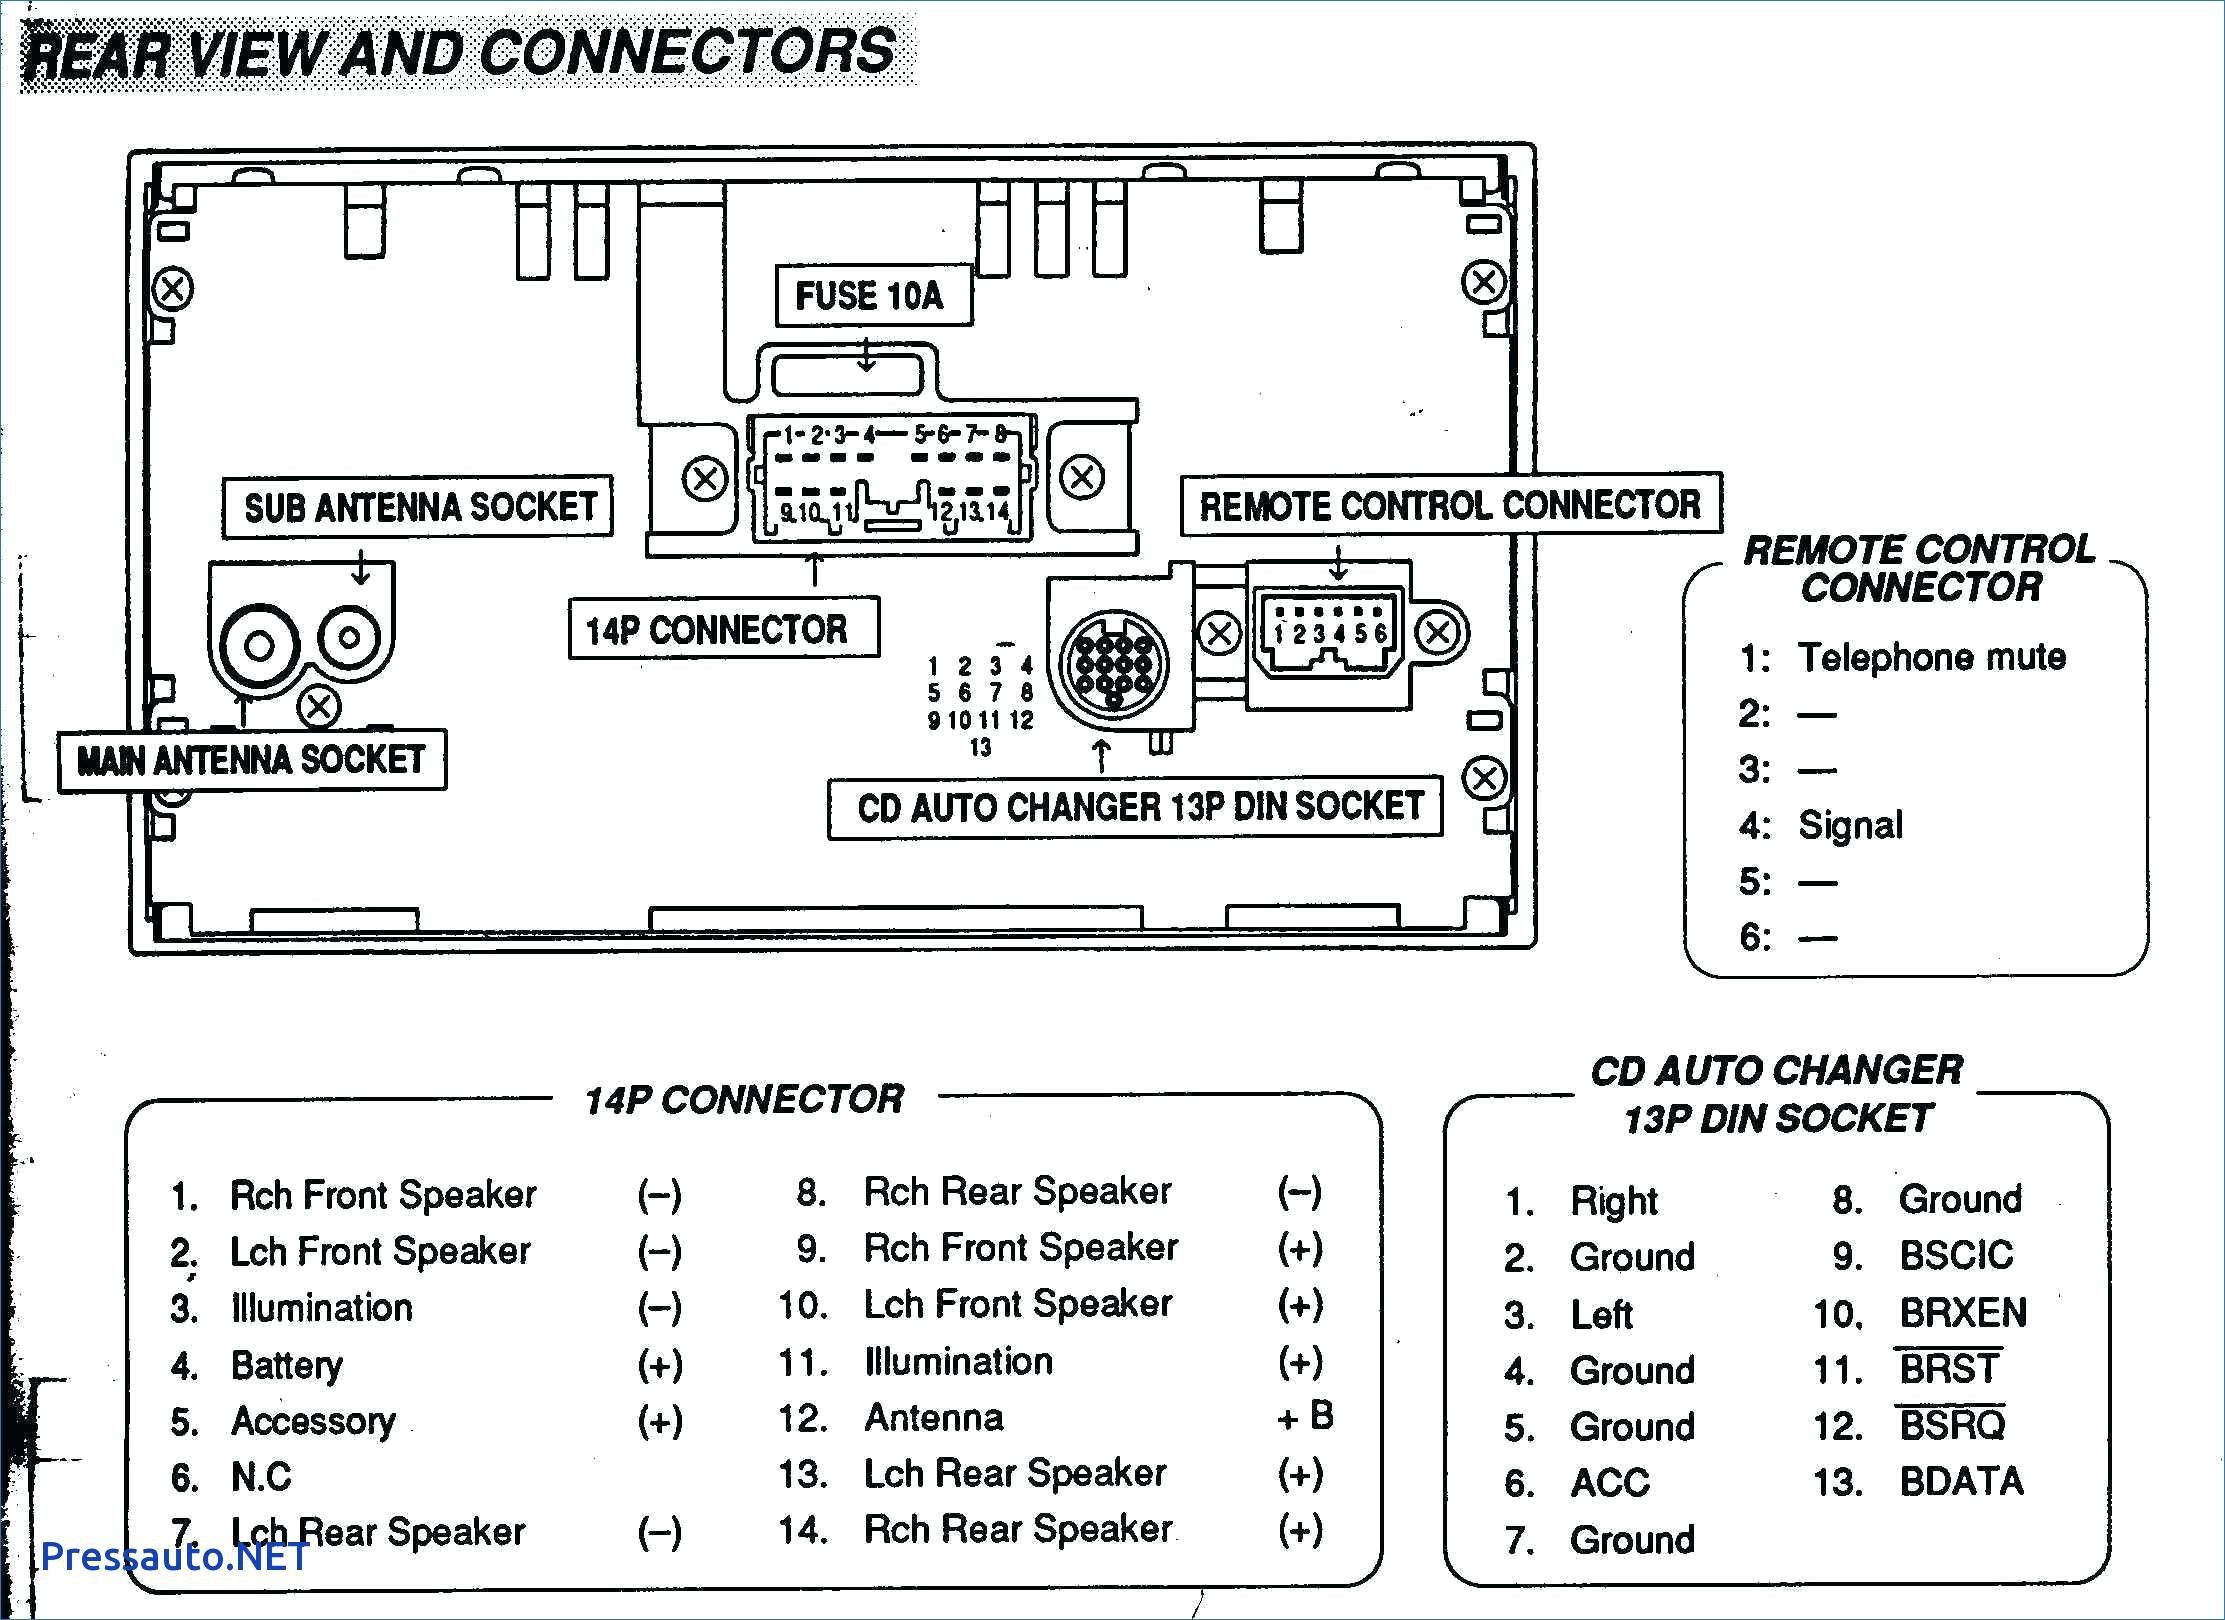 American Standard Heat Pump Thermostat Wiring Diagram - Wiring Diagram